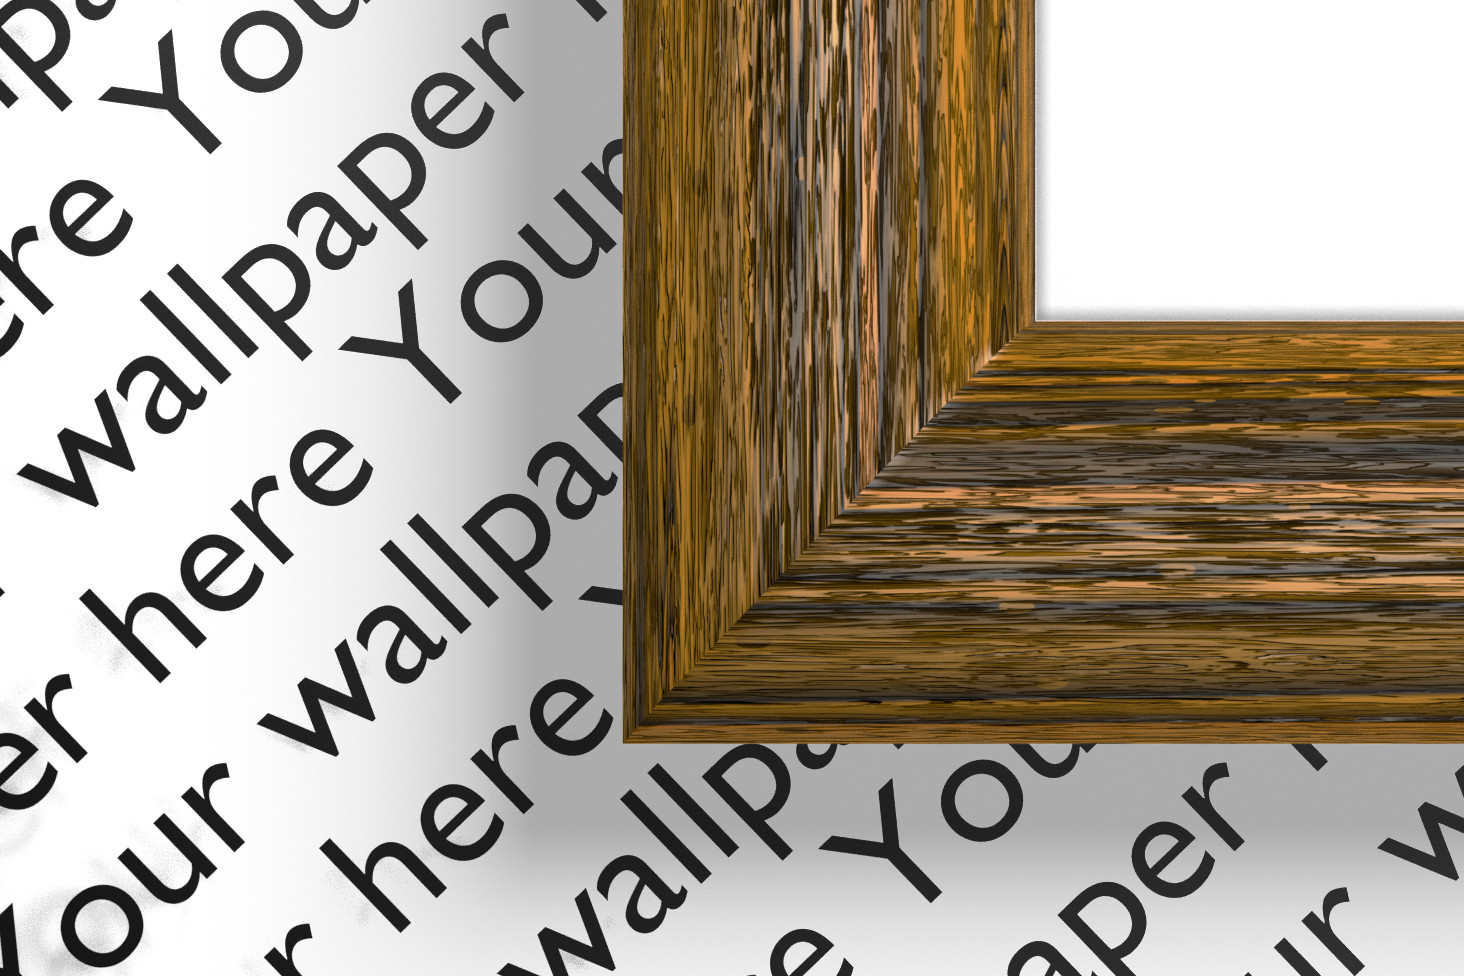 A4 acacia wood digital frame with alpha channel and shadows example image 2